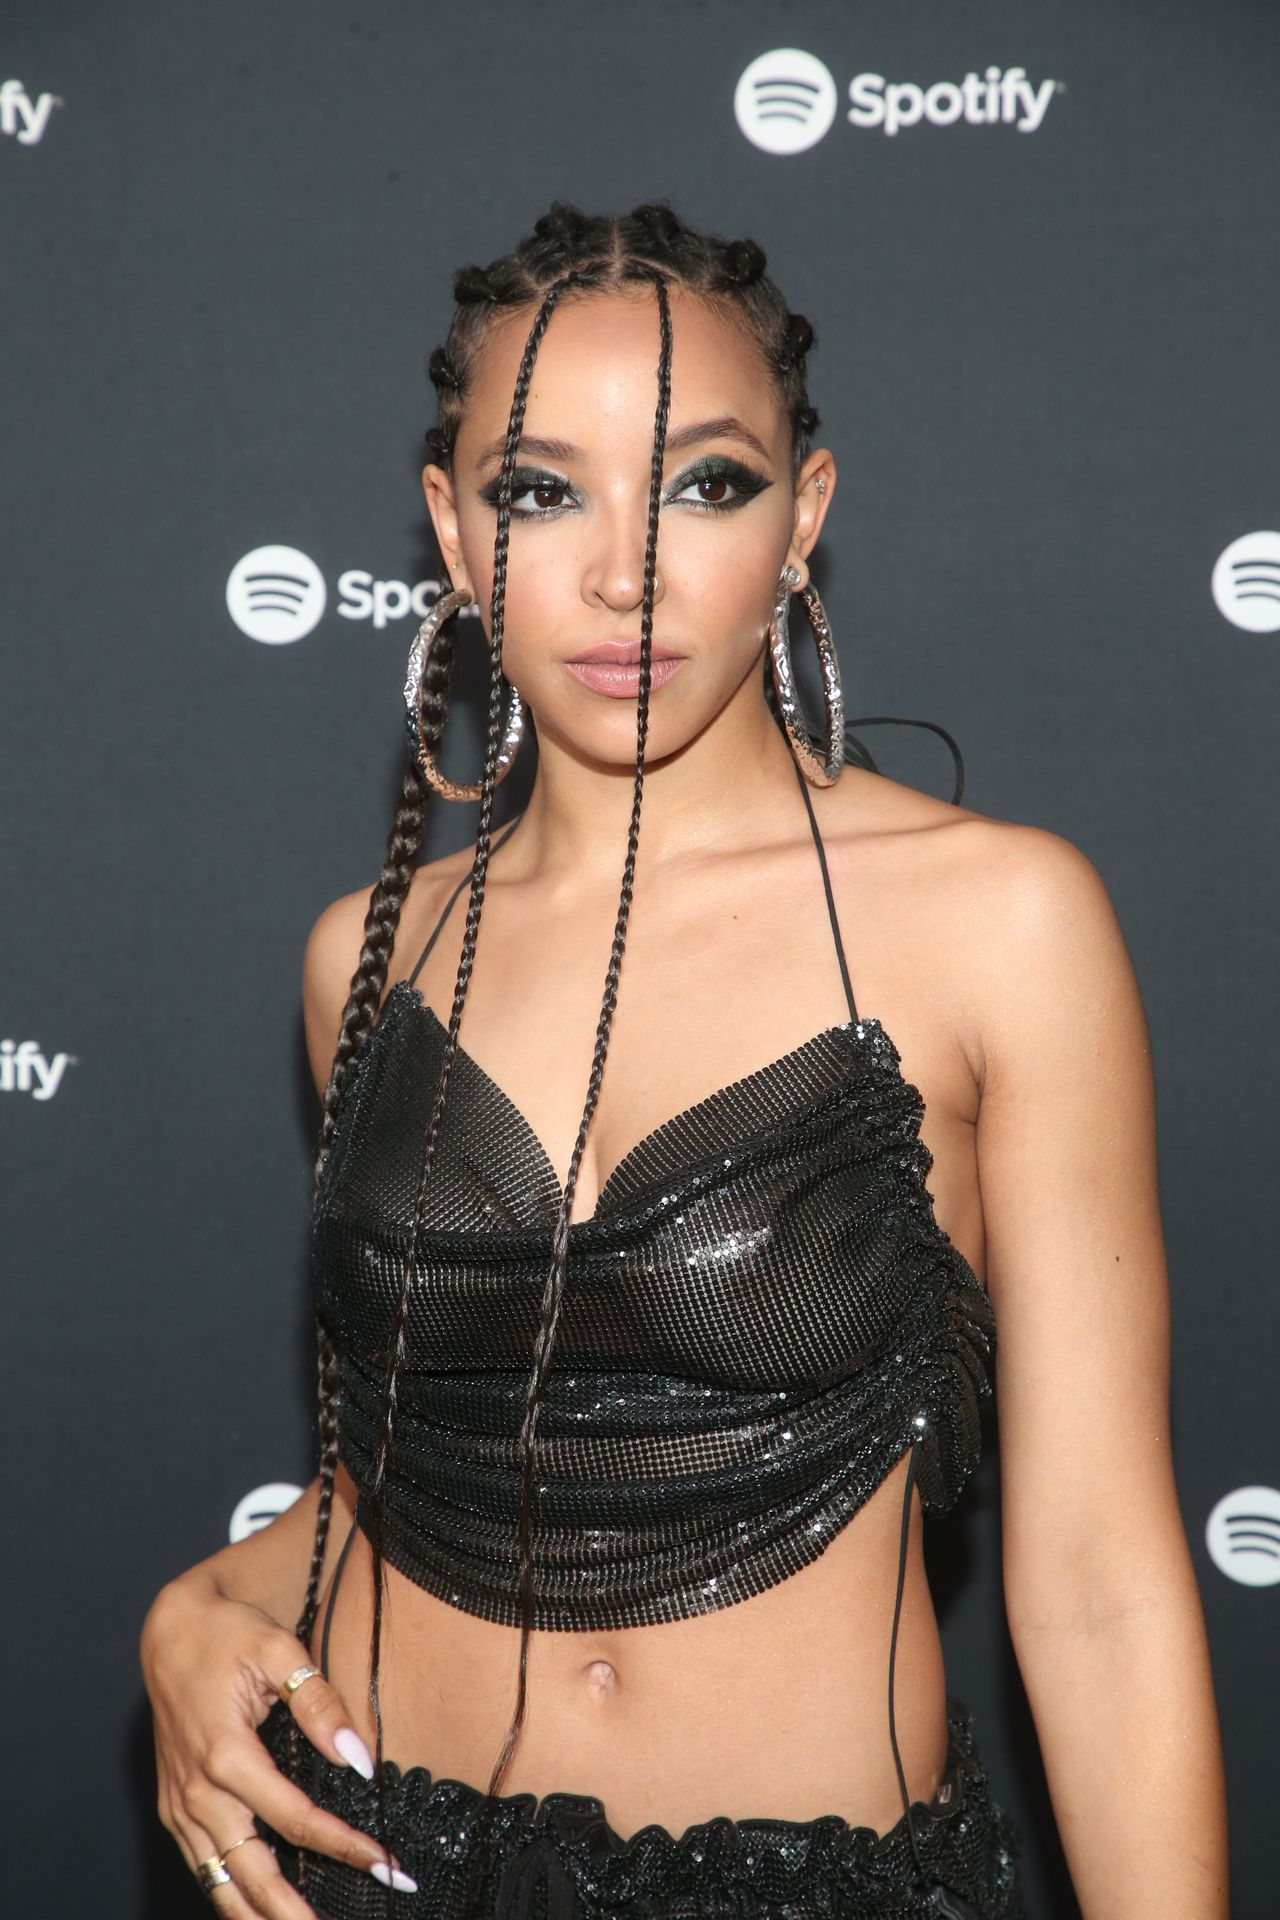 Tinashe Flaunts Her Tits At The Spotify Best New Artist Party 0042